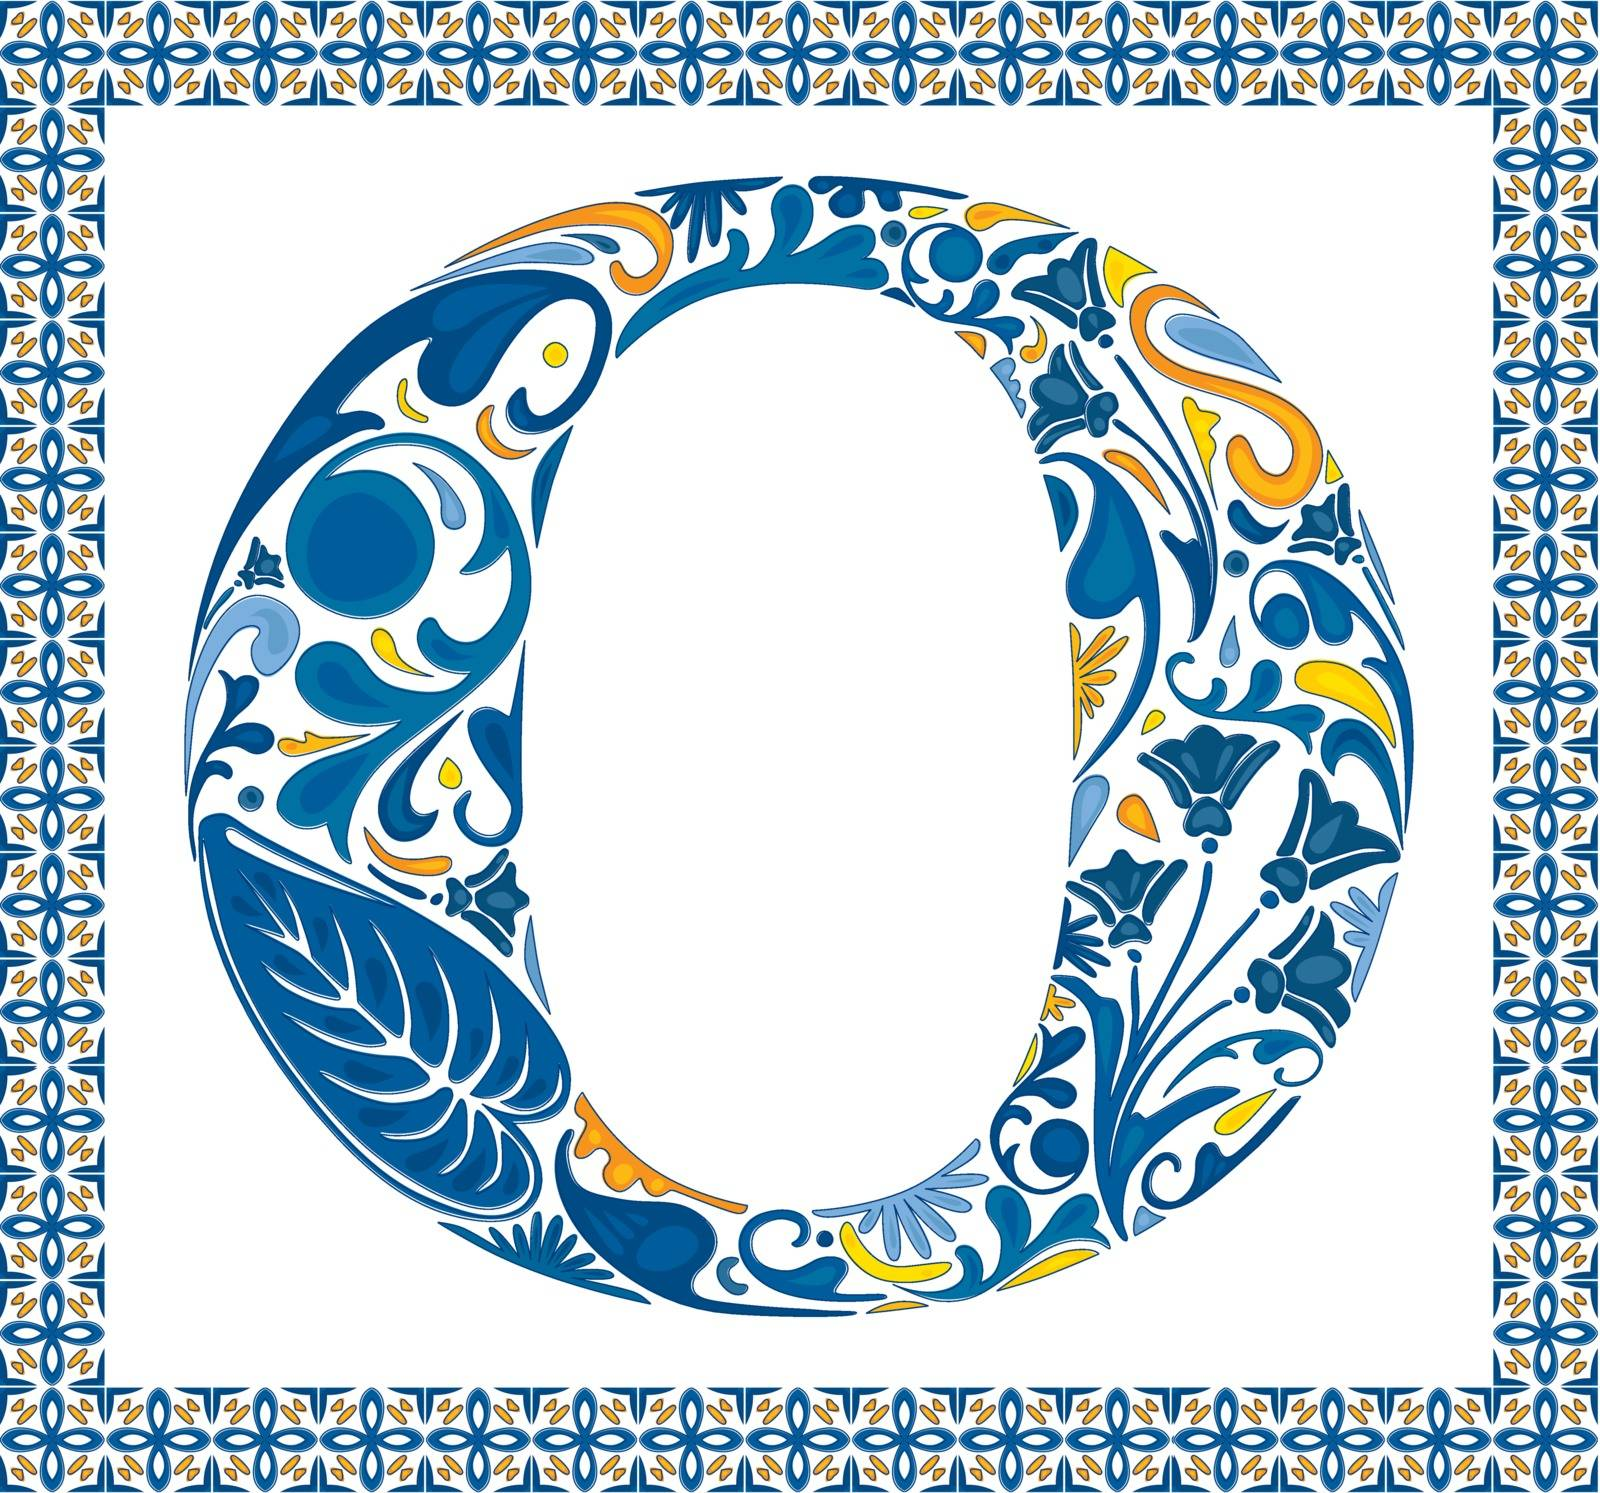 Blue floral capital letter O in frame made of Portuguese tiles